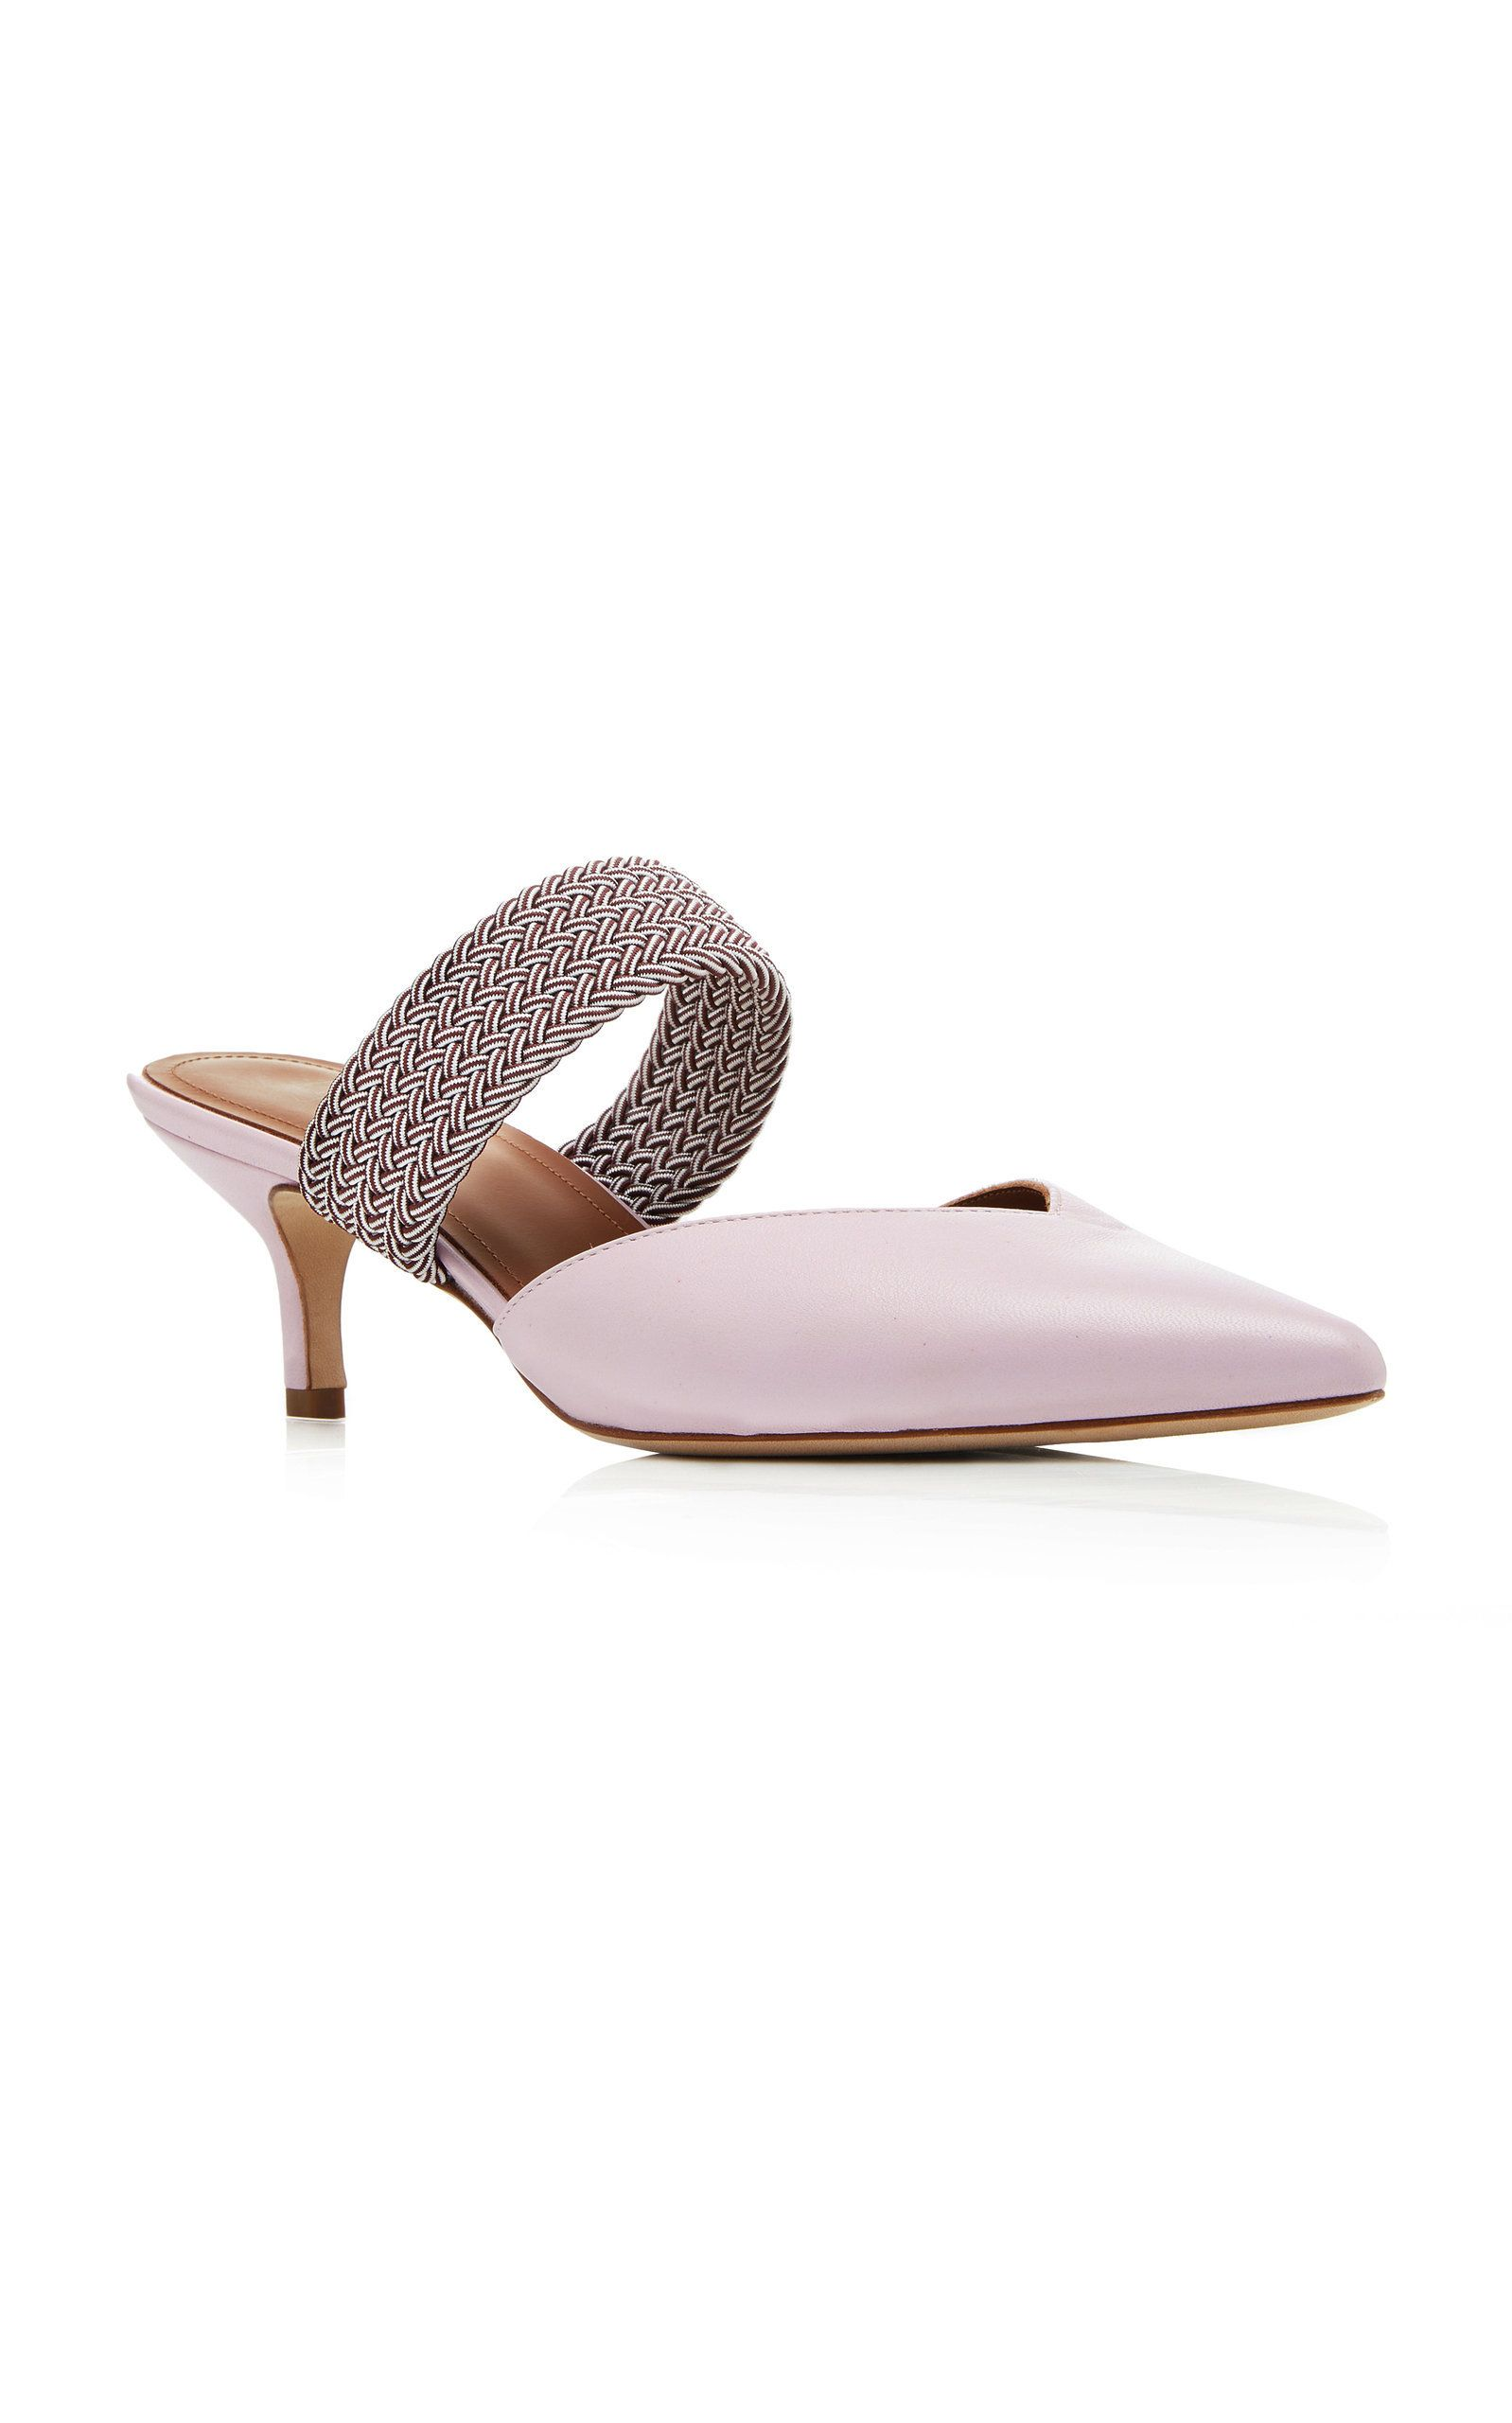 3f3cc947c8b Click product to zoom Malone Souliers